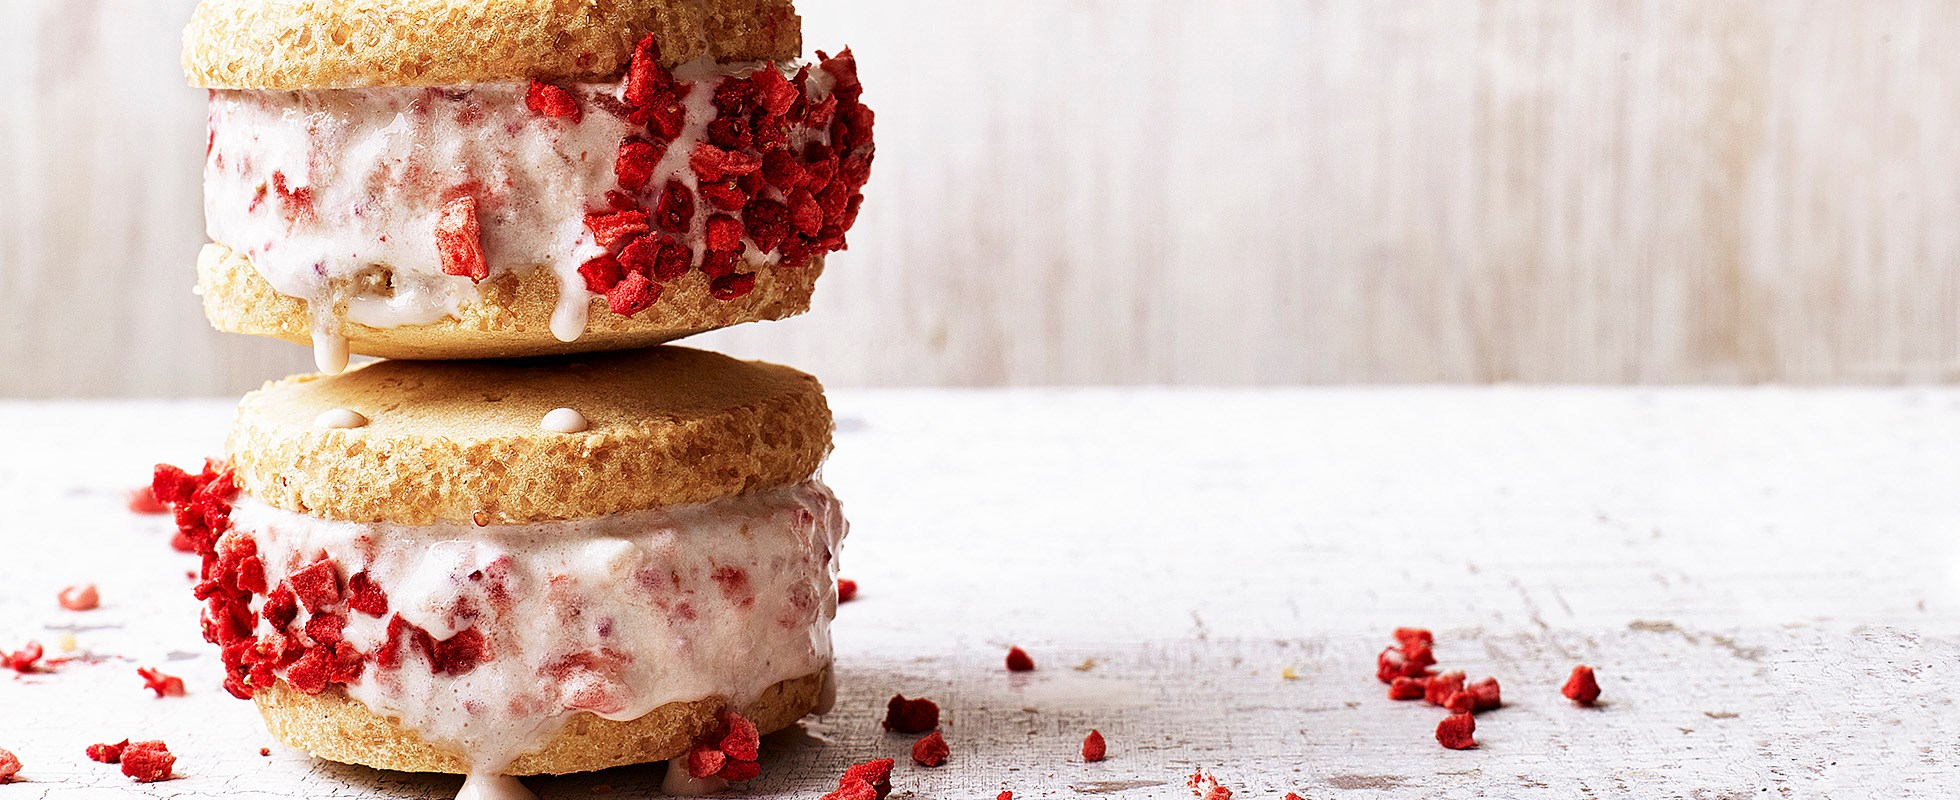 Strawberry shortcake ice-cream sandwiches